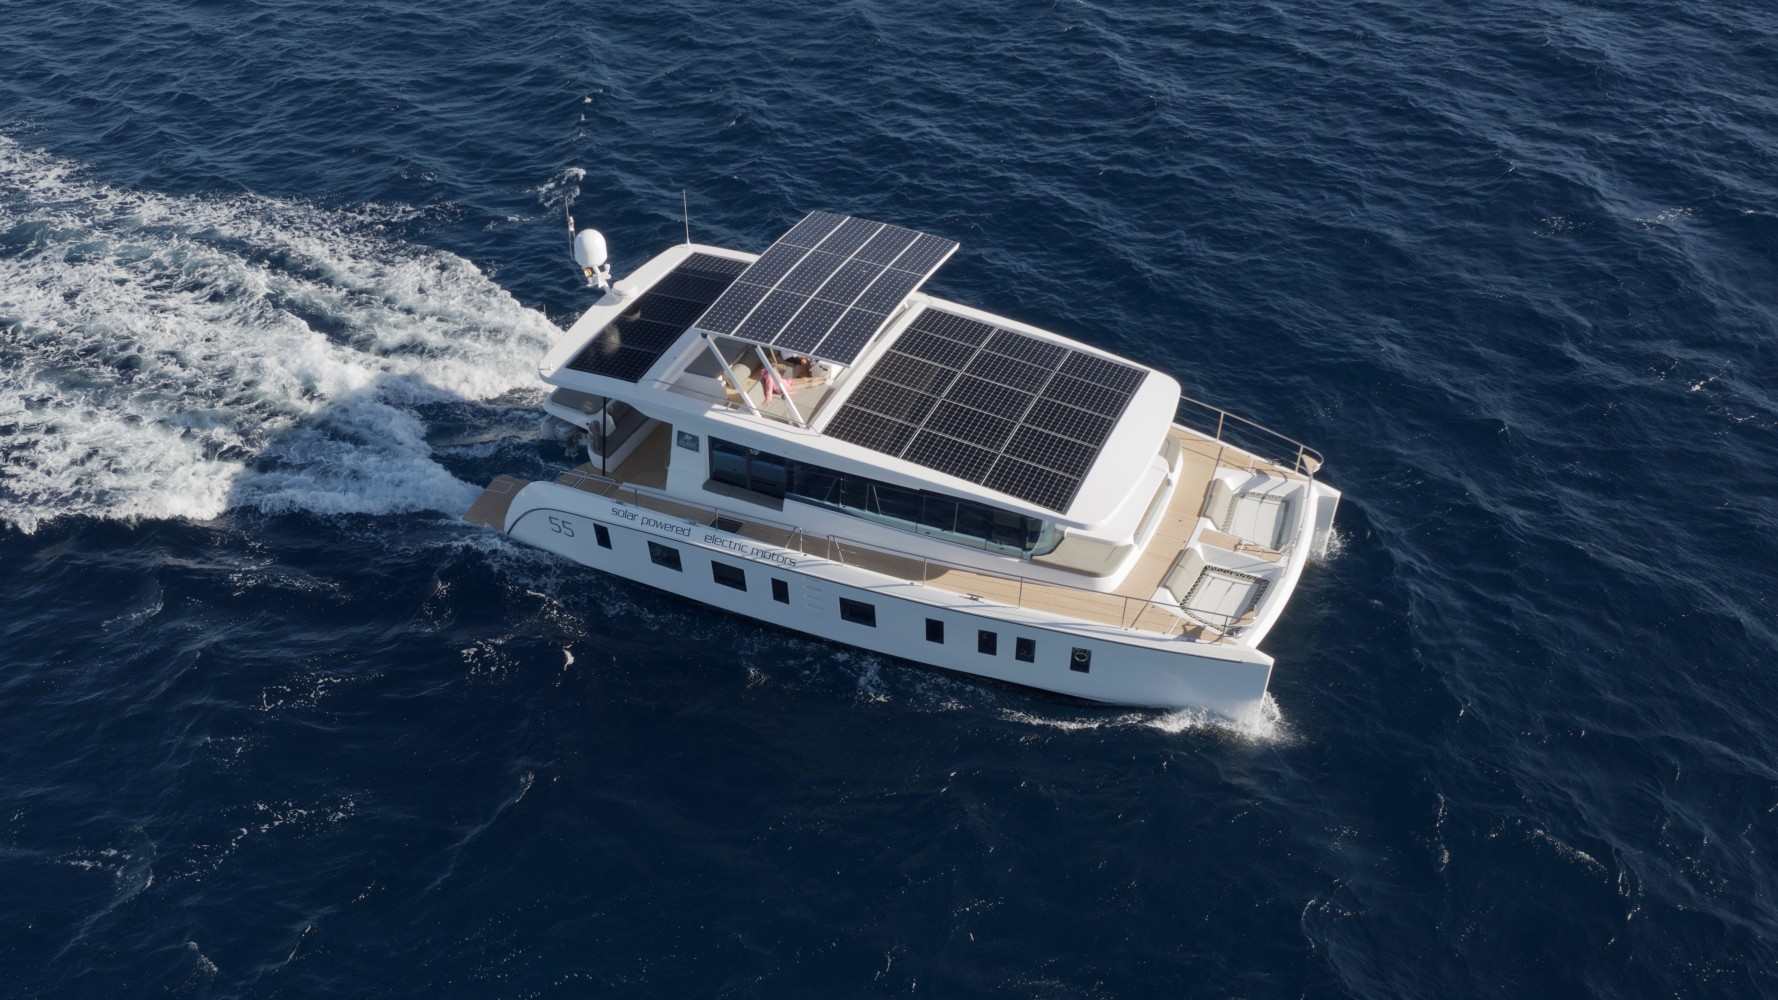 Silent 55 yacht promises up to 100 miles of solar-powered cruising per day